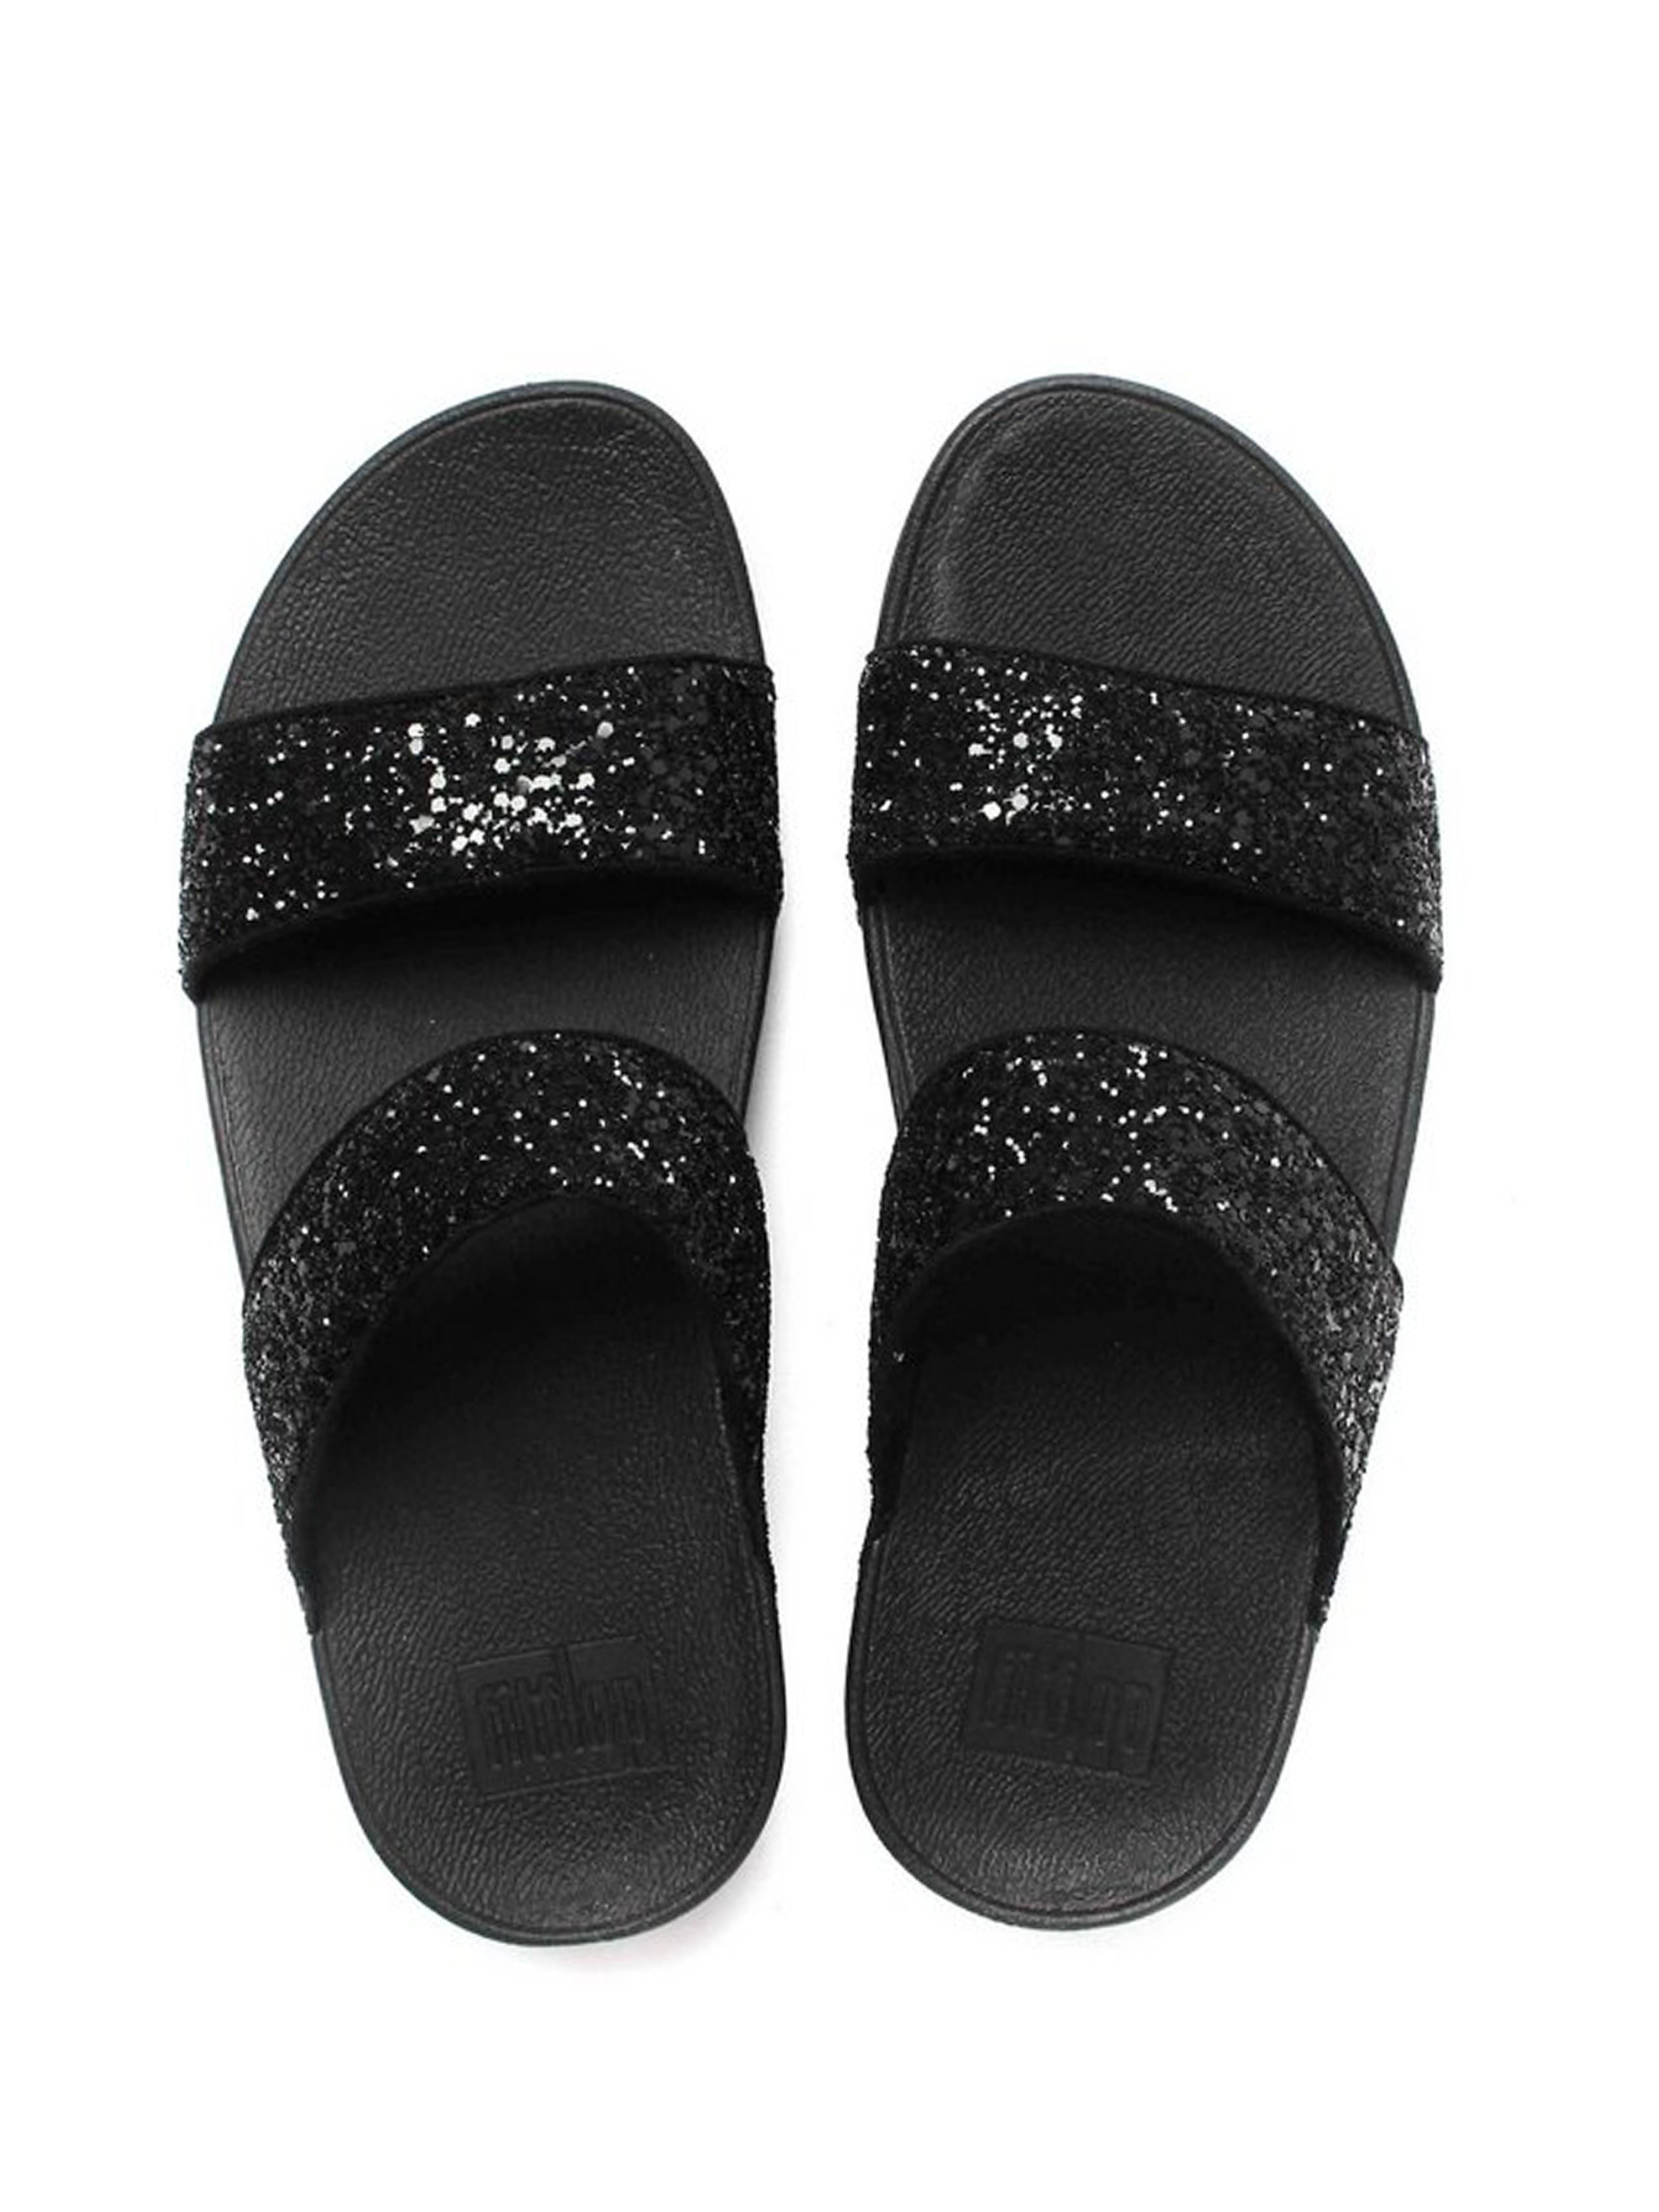 FitFlop Women's Glitterball Slide Sandals Black